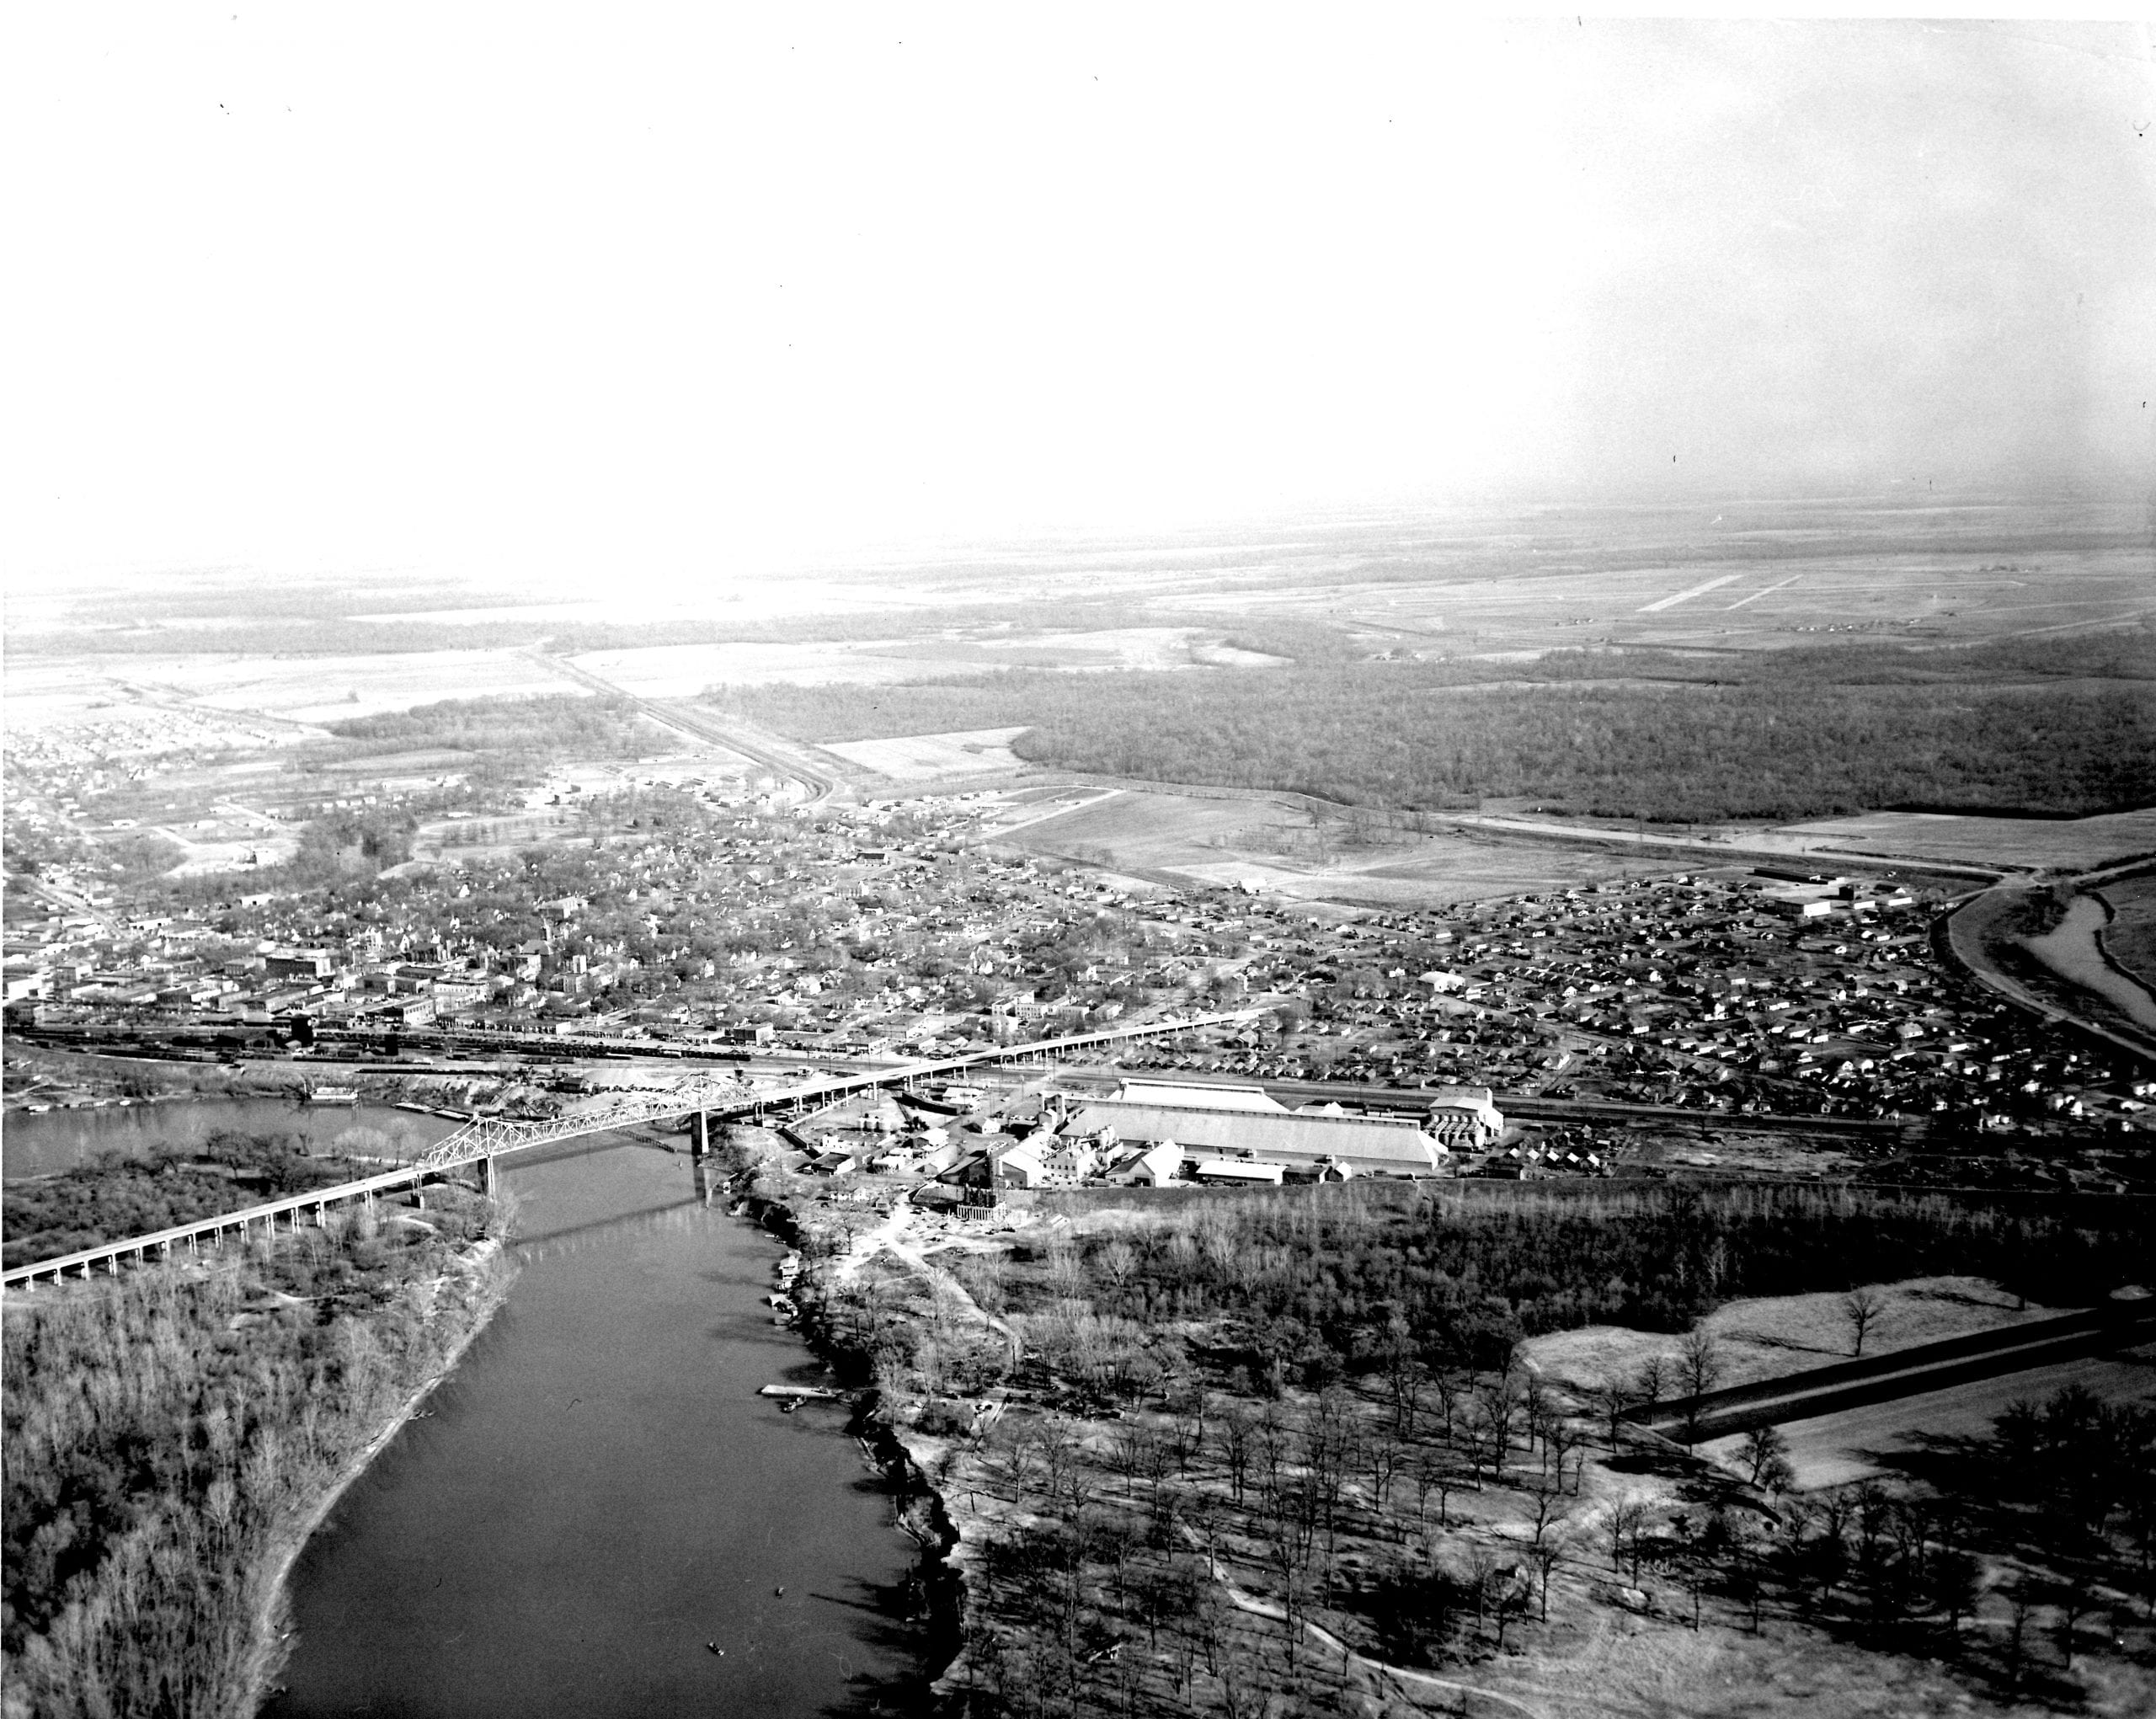 1940's – Aerial view of Newport